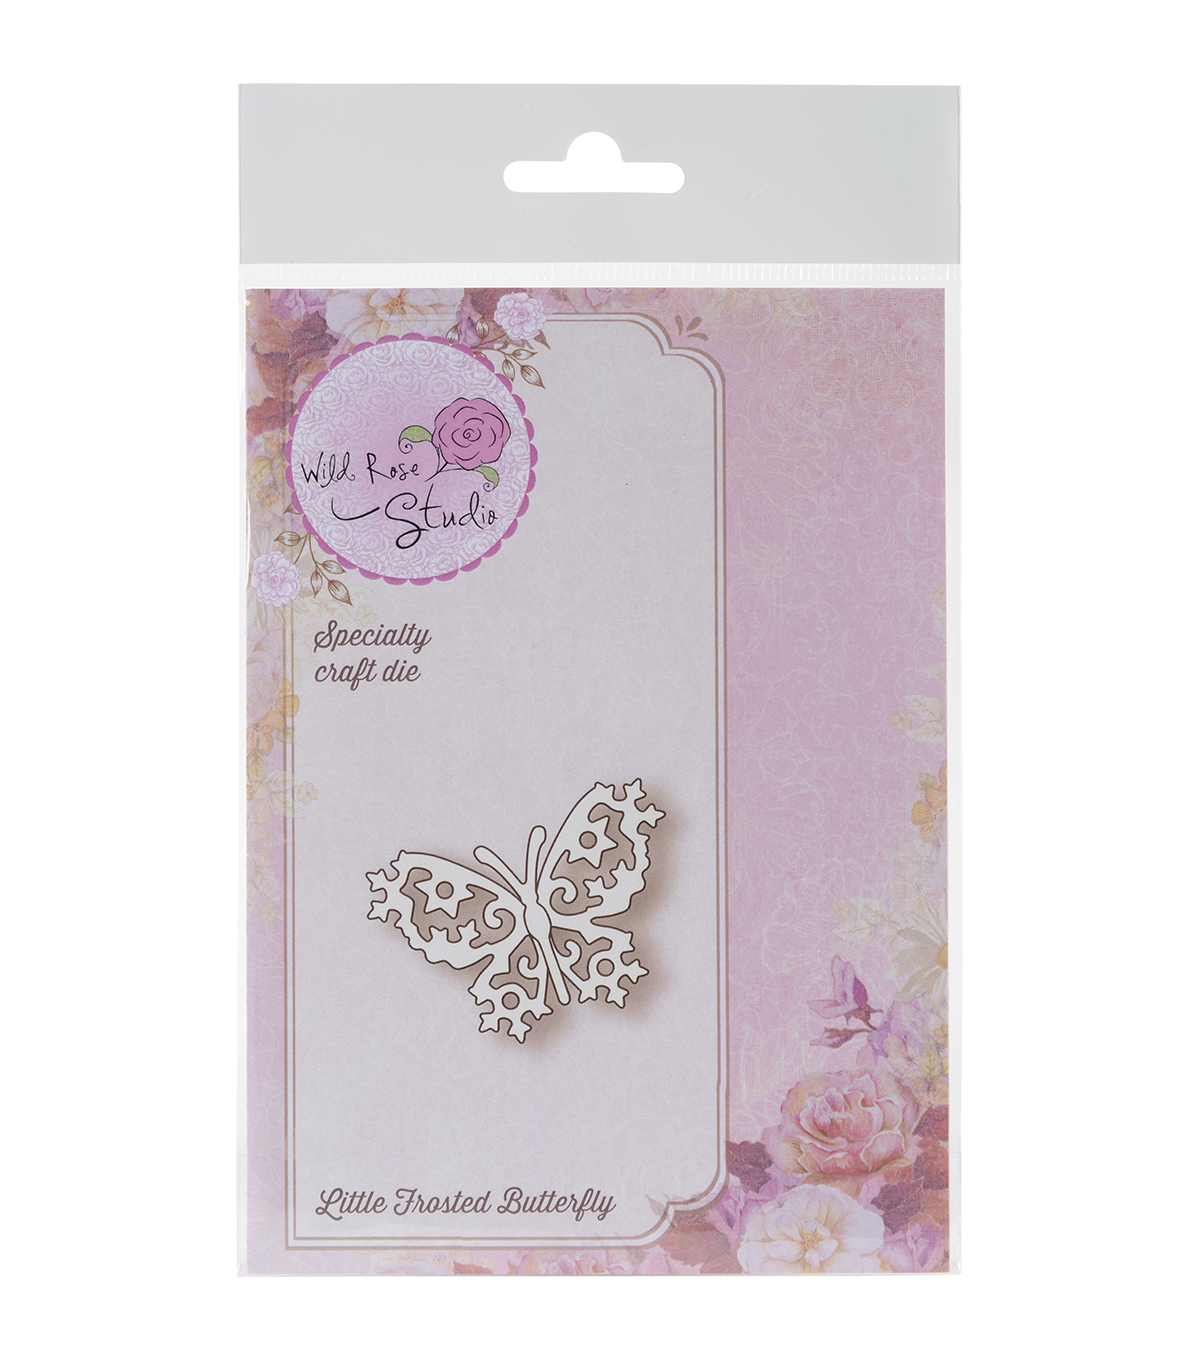 Wild Rose Studio Specialty Die-Little Frosted Butterfly